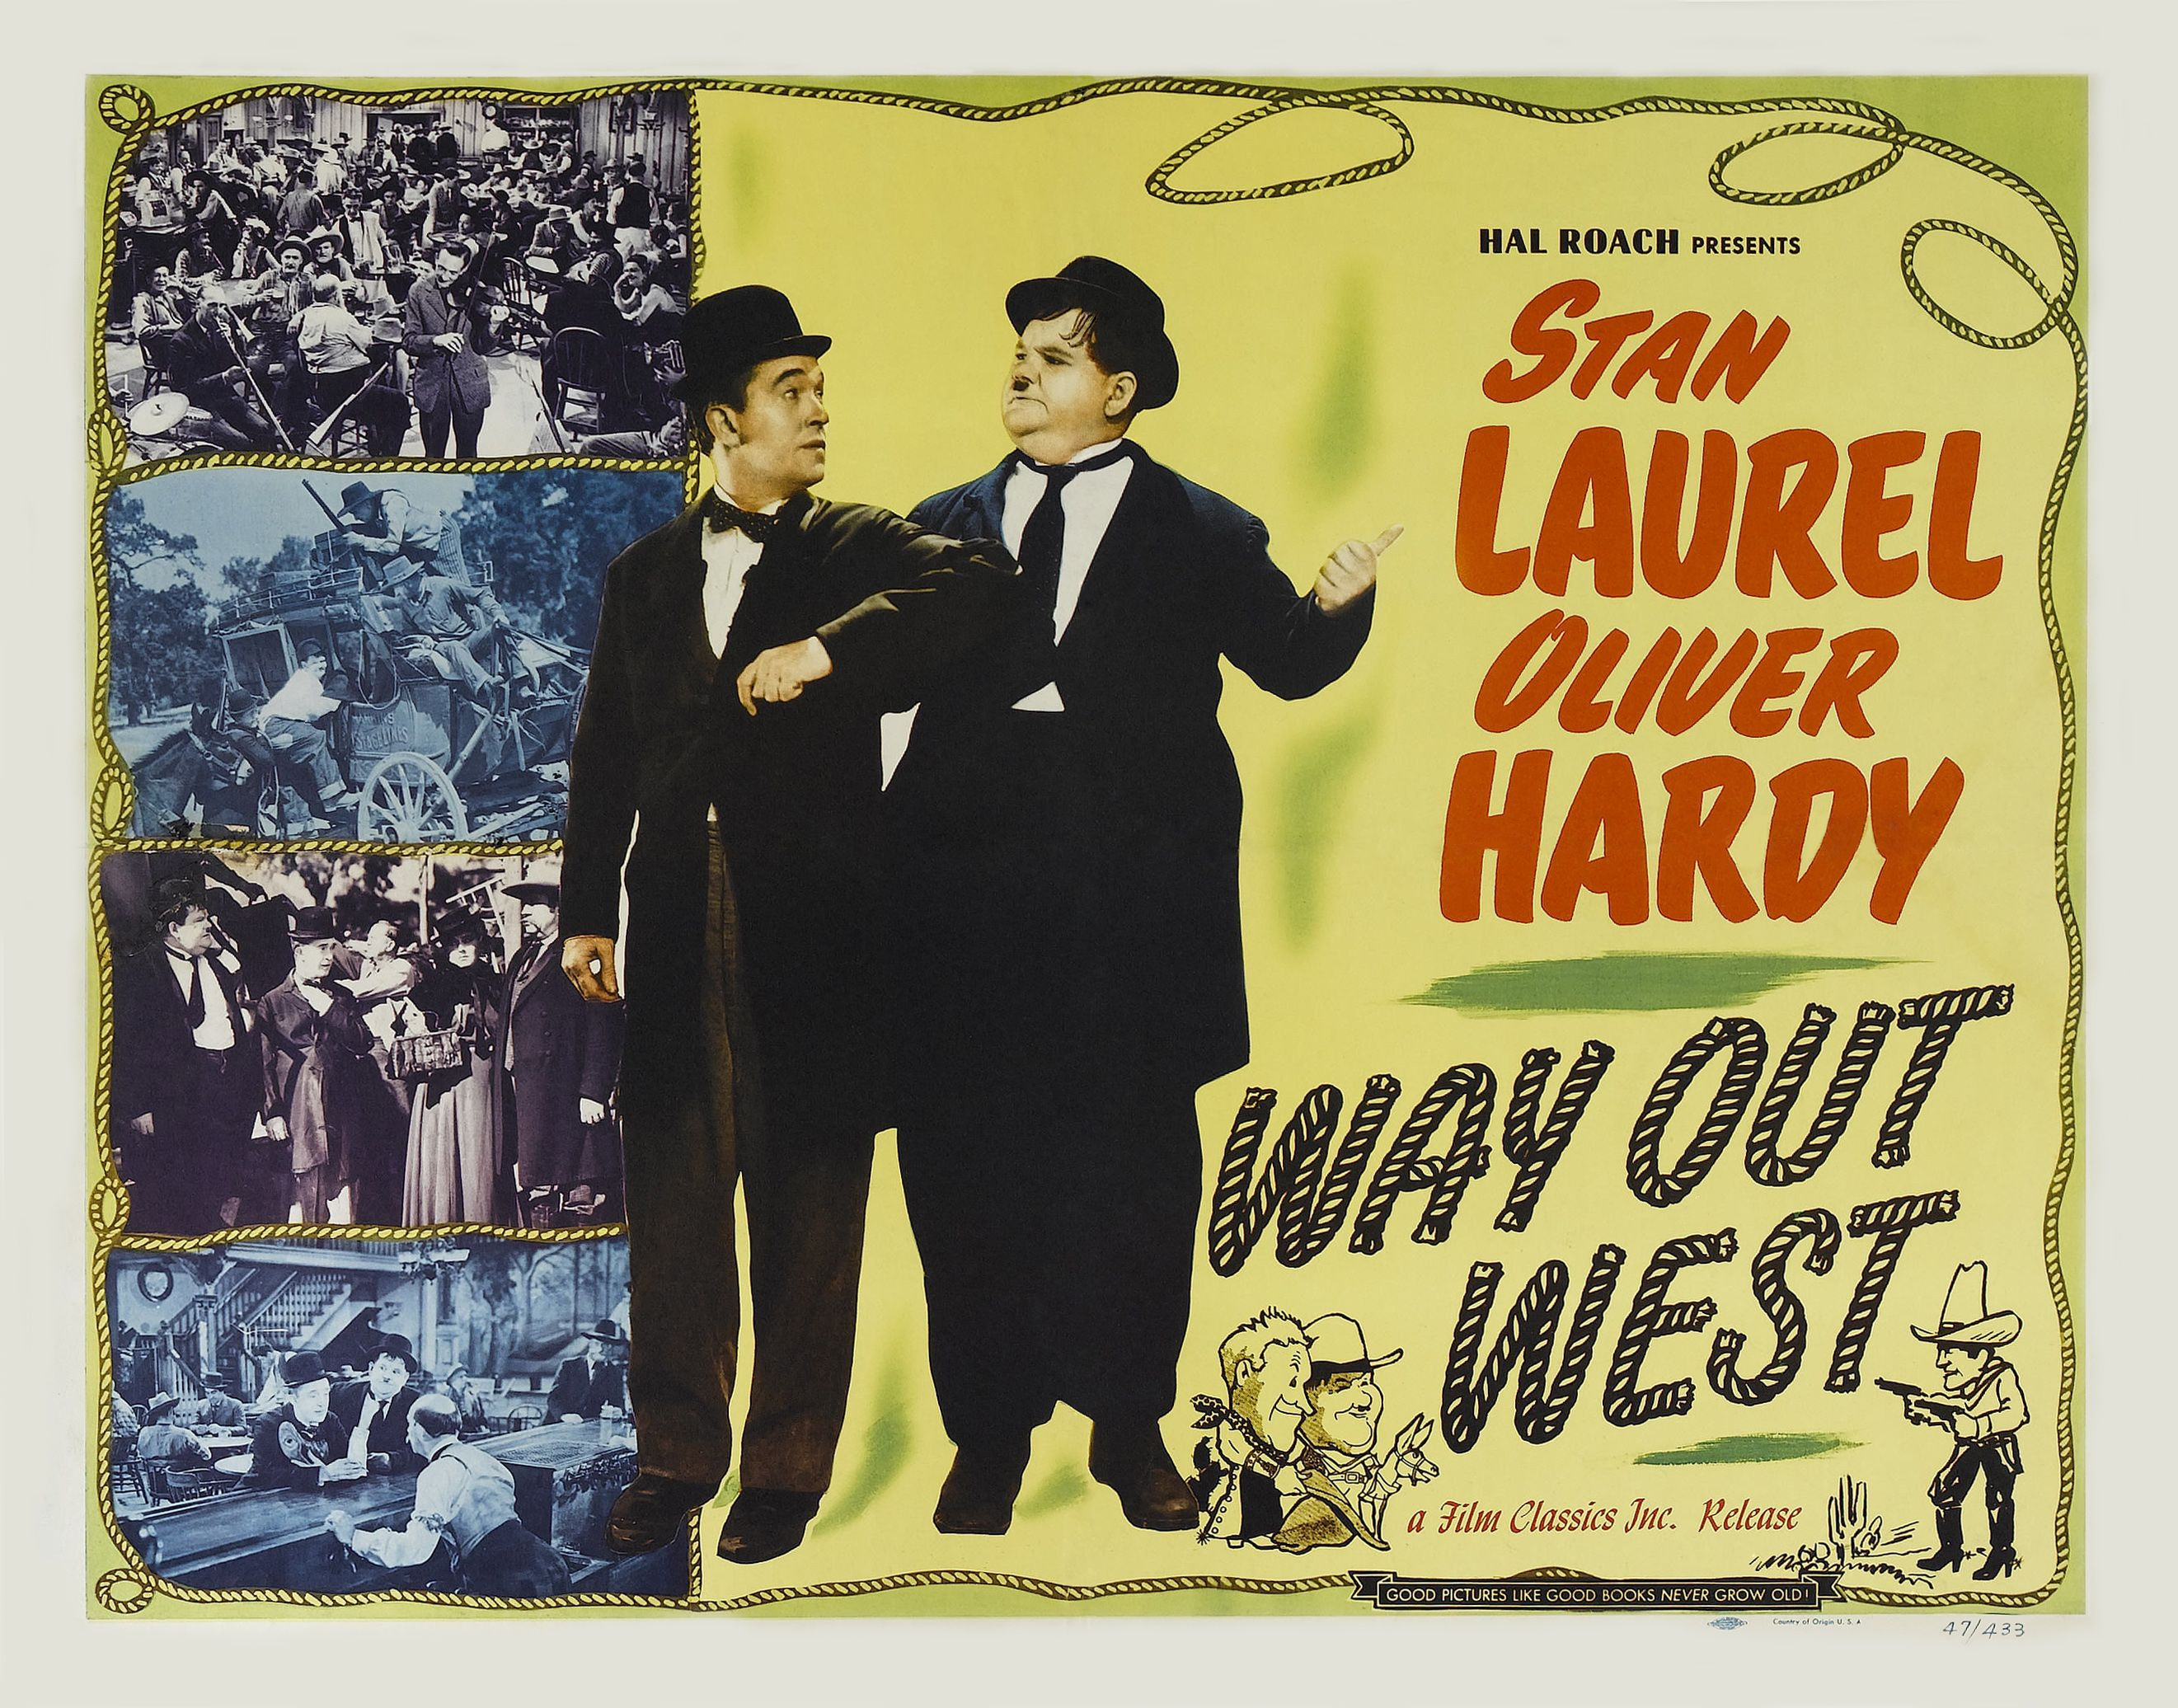 Laurel & Hardy Laurel and hardy, Vintage movies, Movie